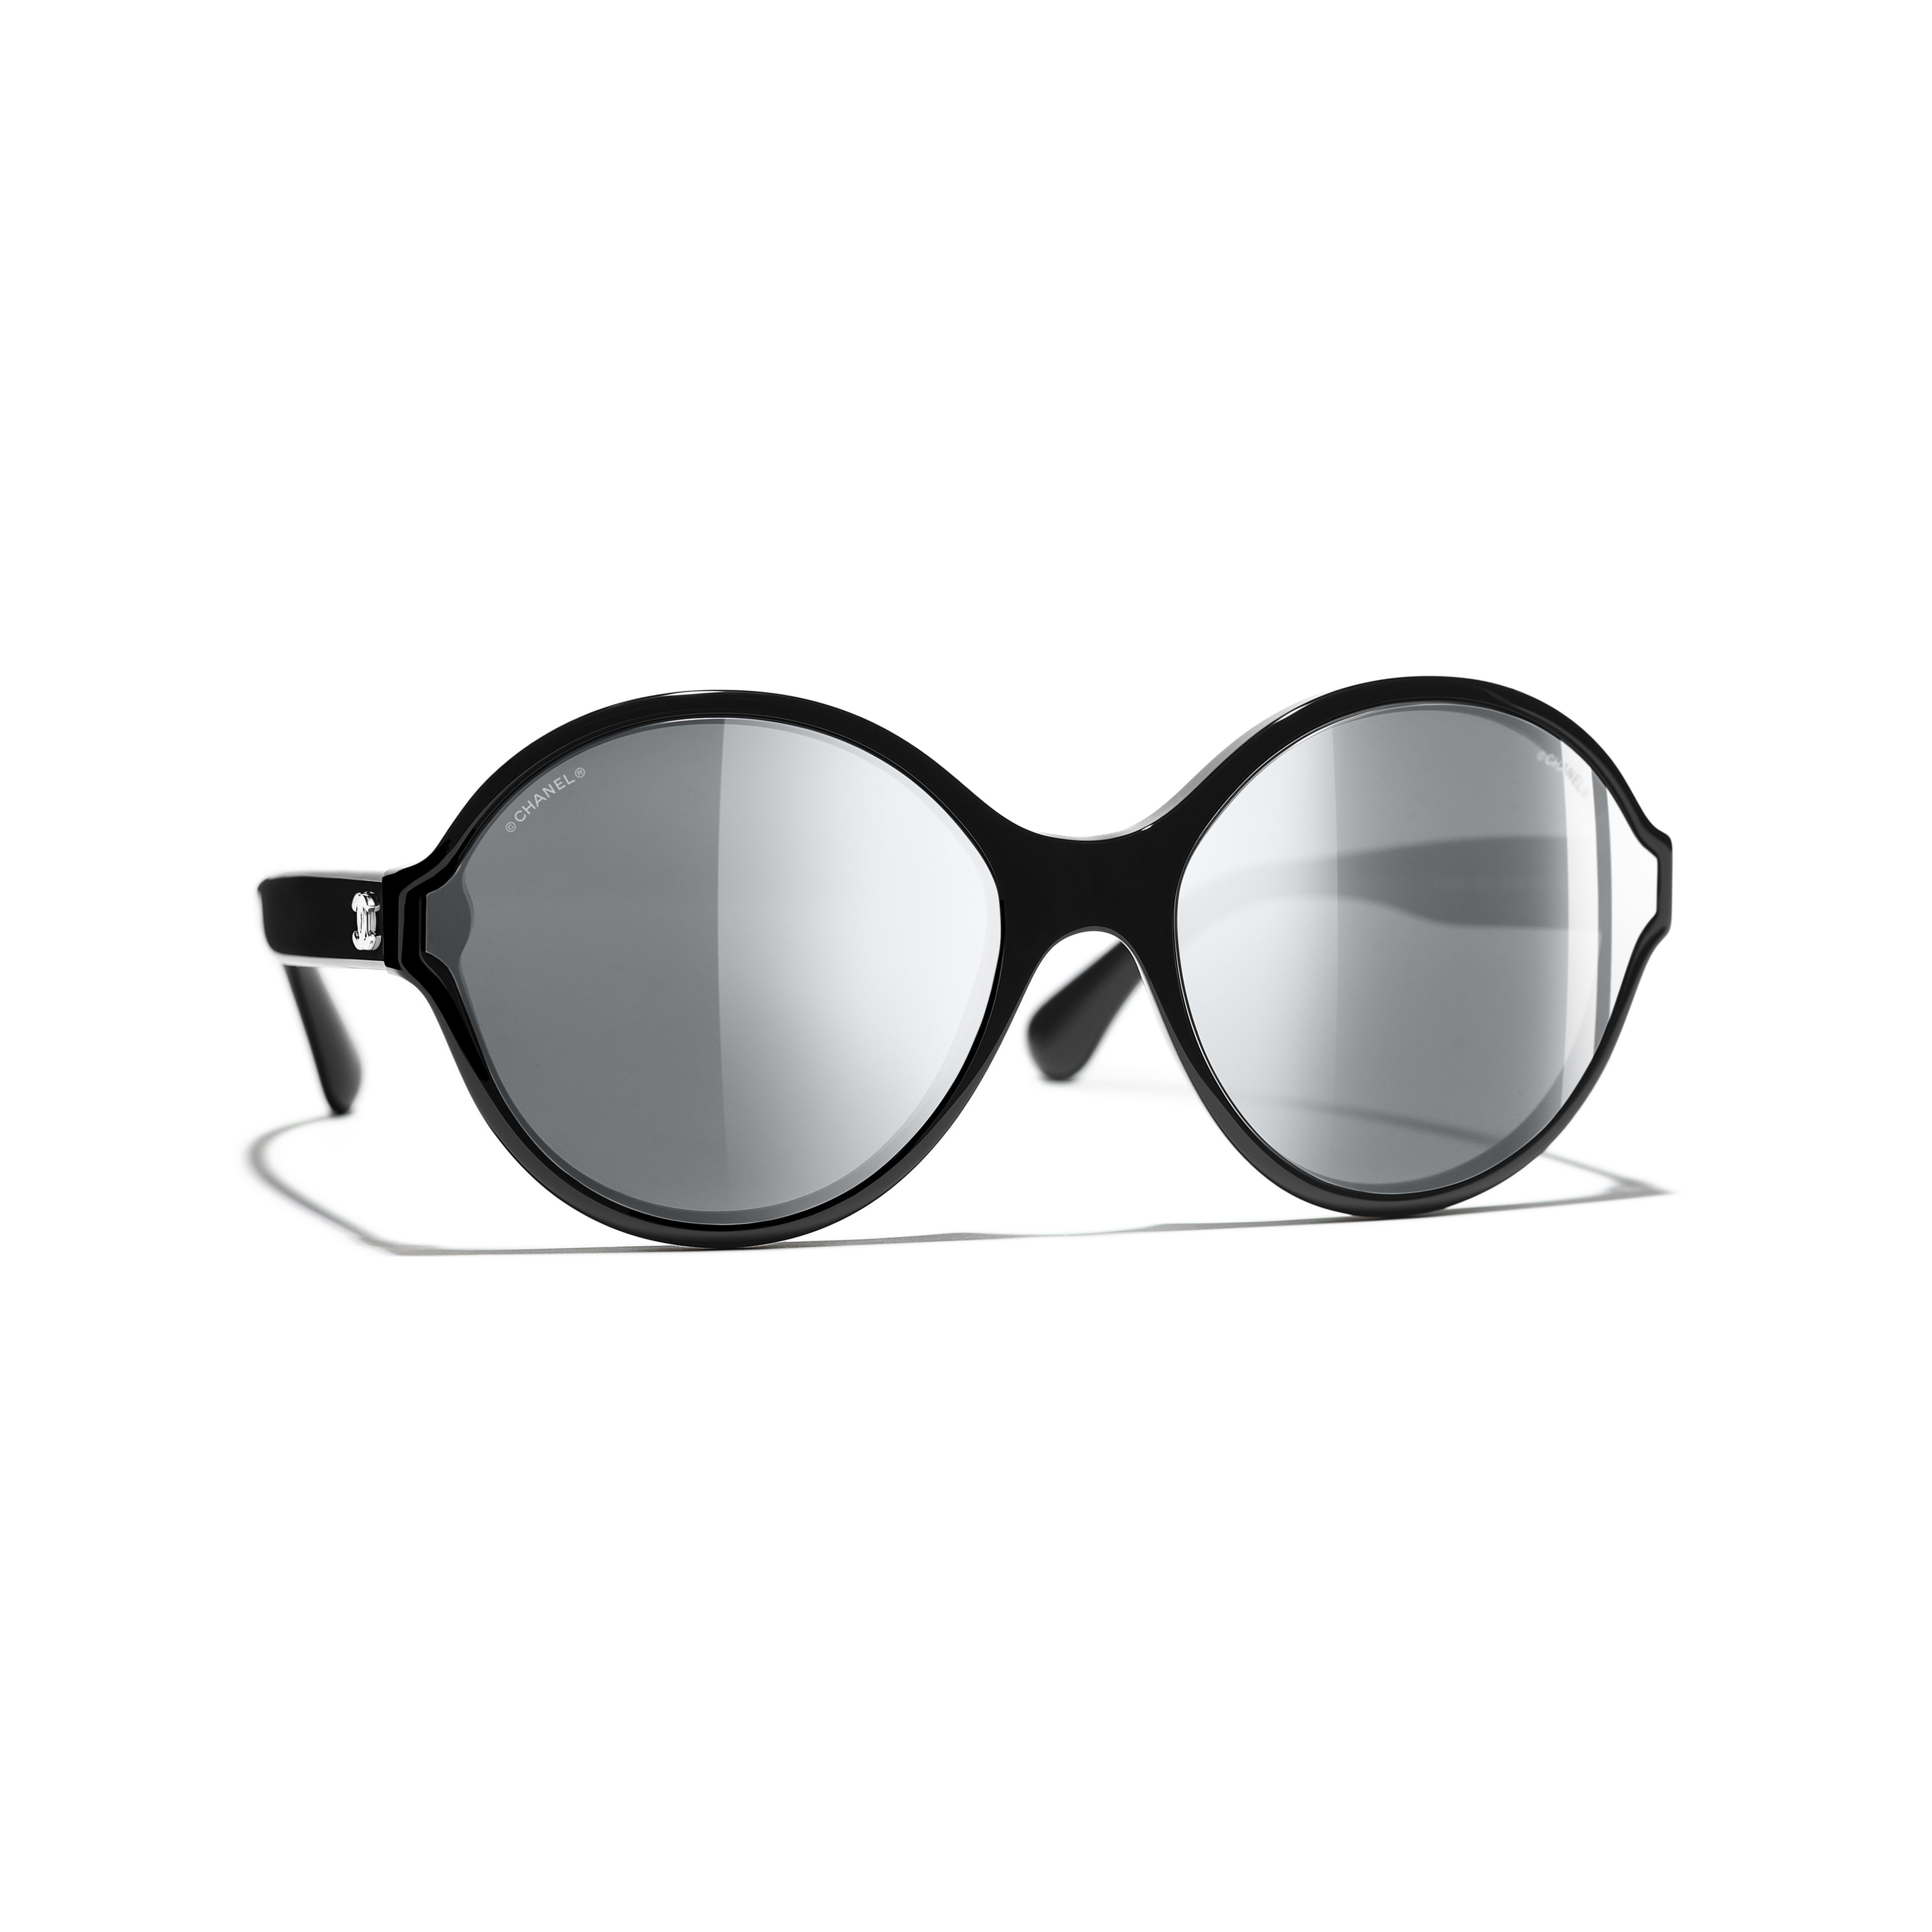 Round Sunglasses - Black - Acetate - Default view - see standard sized version